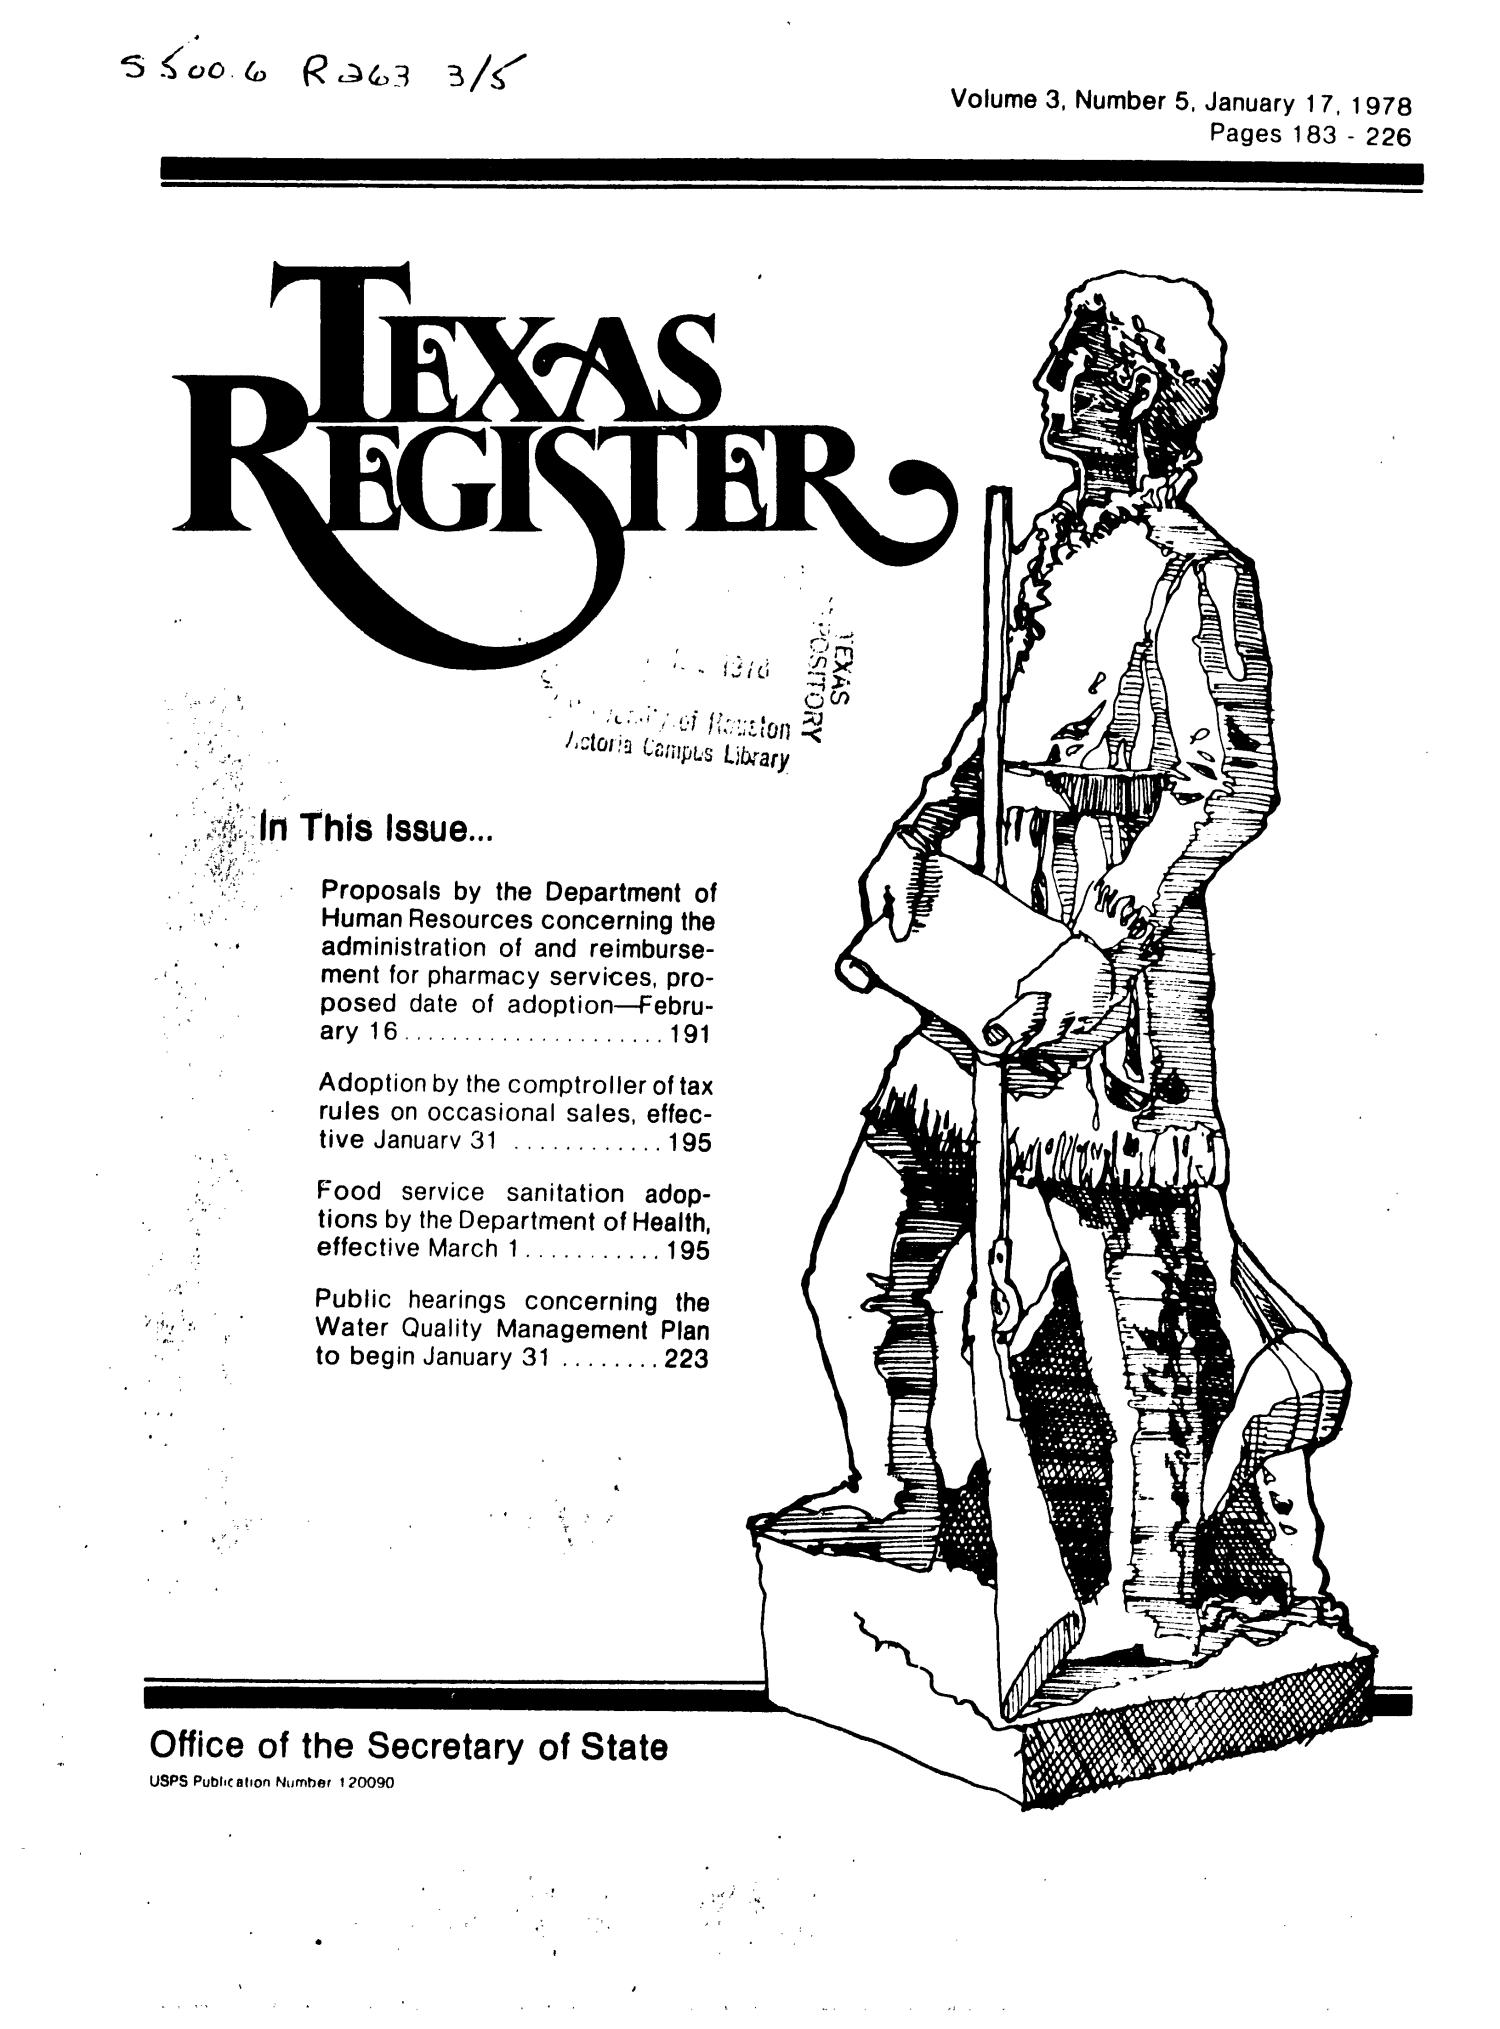 Texas Register, Volume 3, Number 5, Pages 183-226, January 17, 1978                                                                                                      Title Page